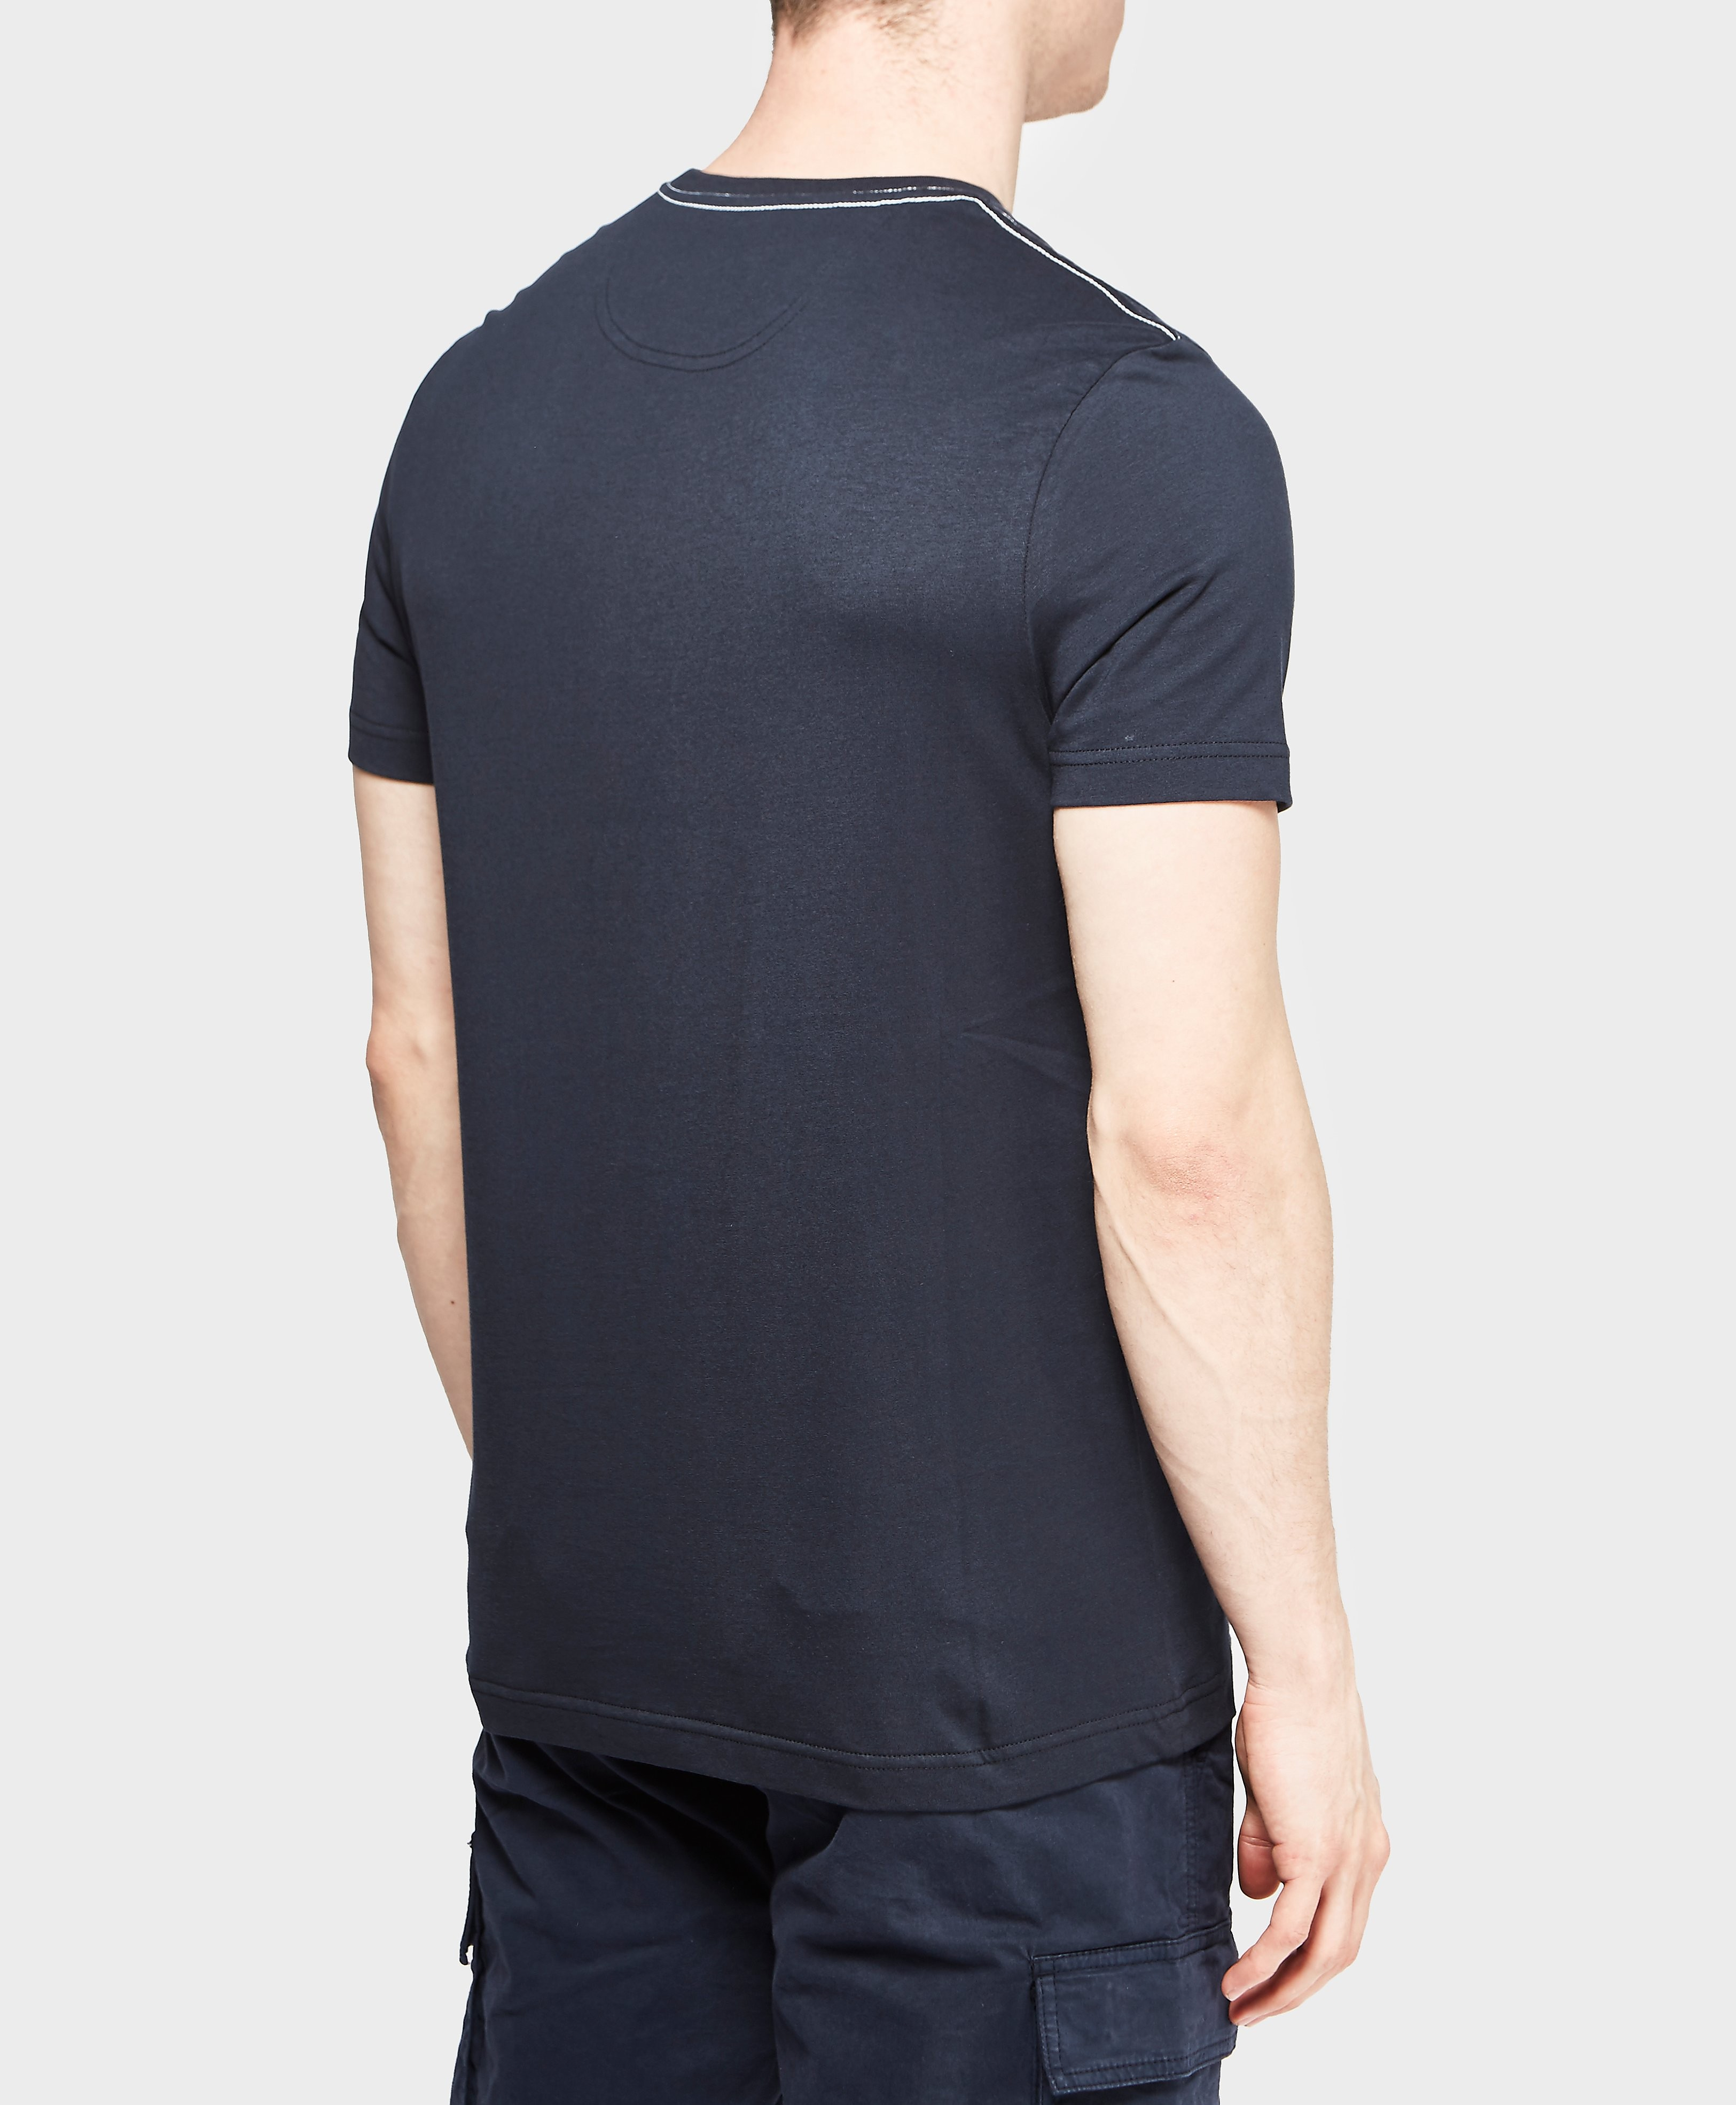 Henri Lloyd Mannan Short Sleeve T-Shirt - Exclusive